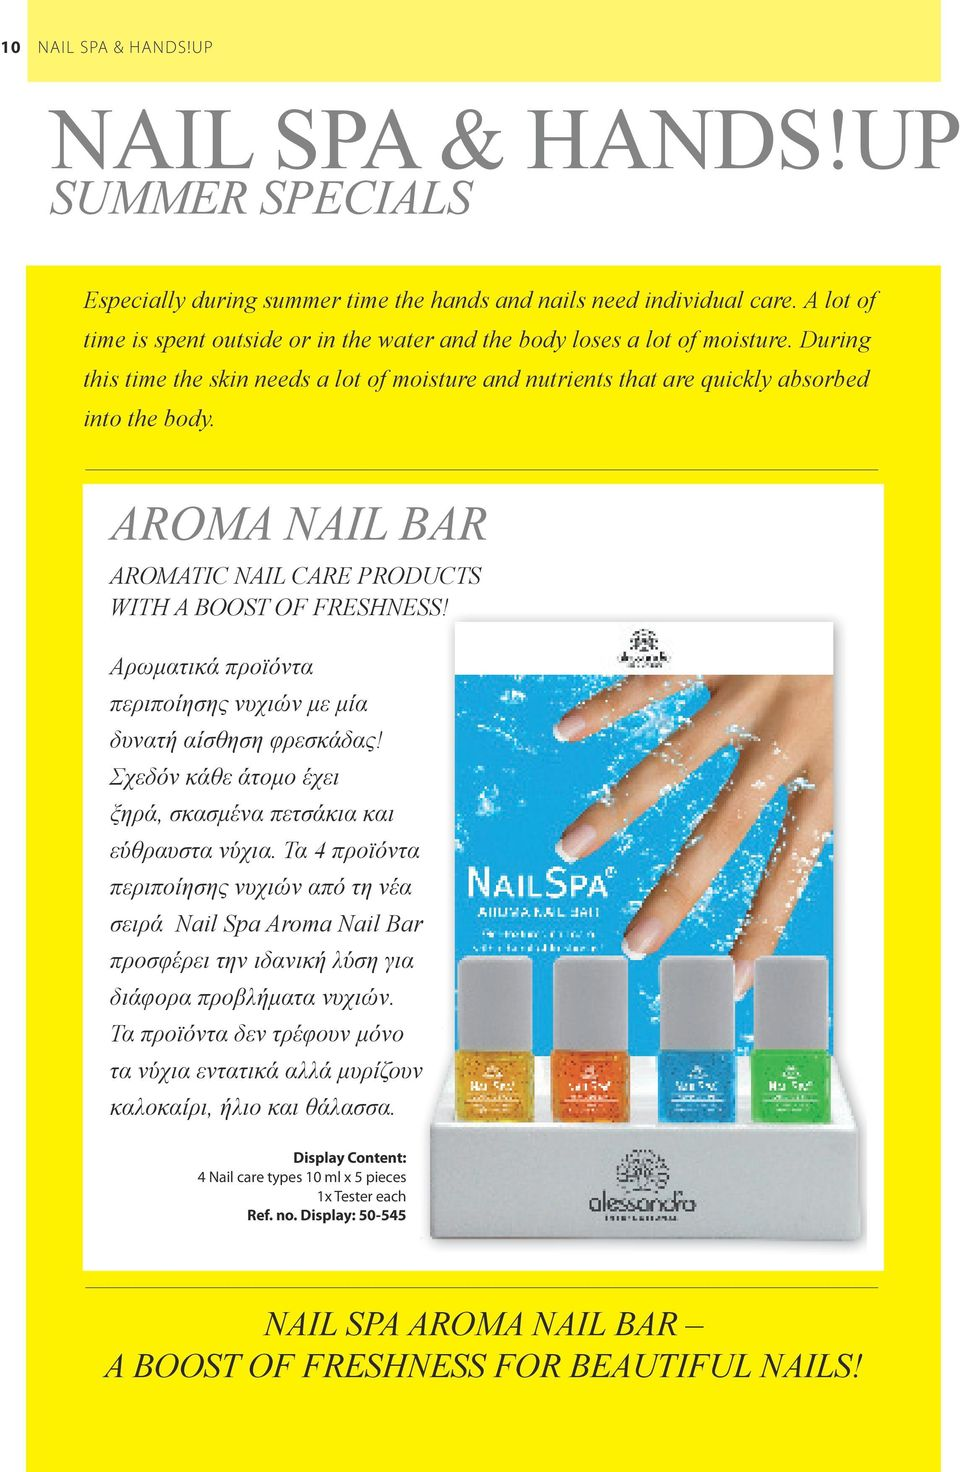 Aroma Nail Bar Aromatic nail care products with a boost of freshness! Αρωματικά προϊόντα περιποίησης νυχιών με μία δυνατή αίσθηση φρεσκάδας!